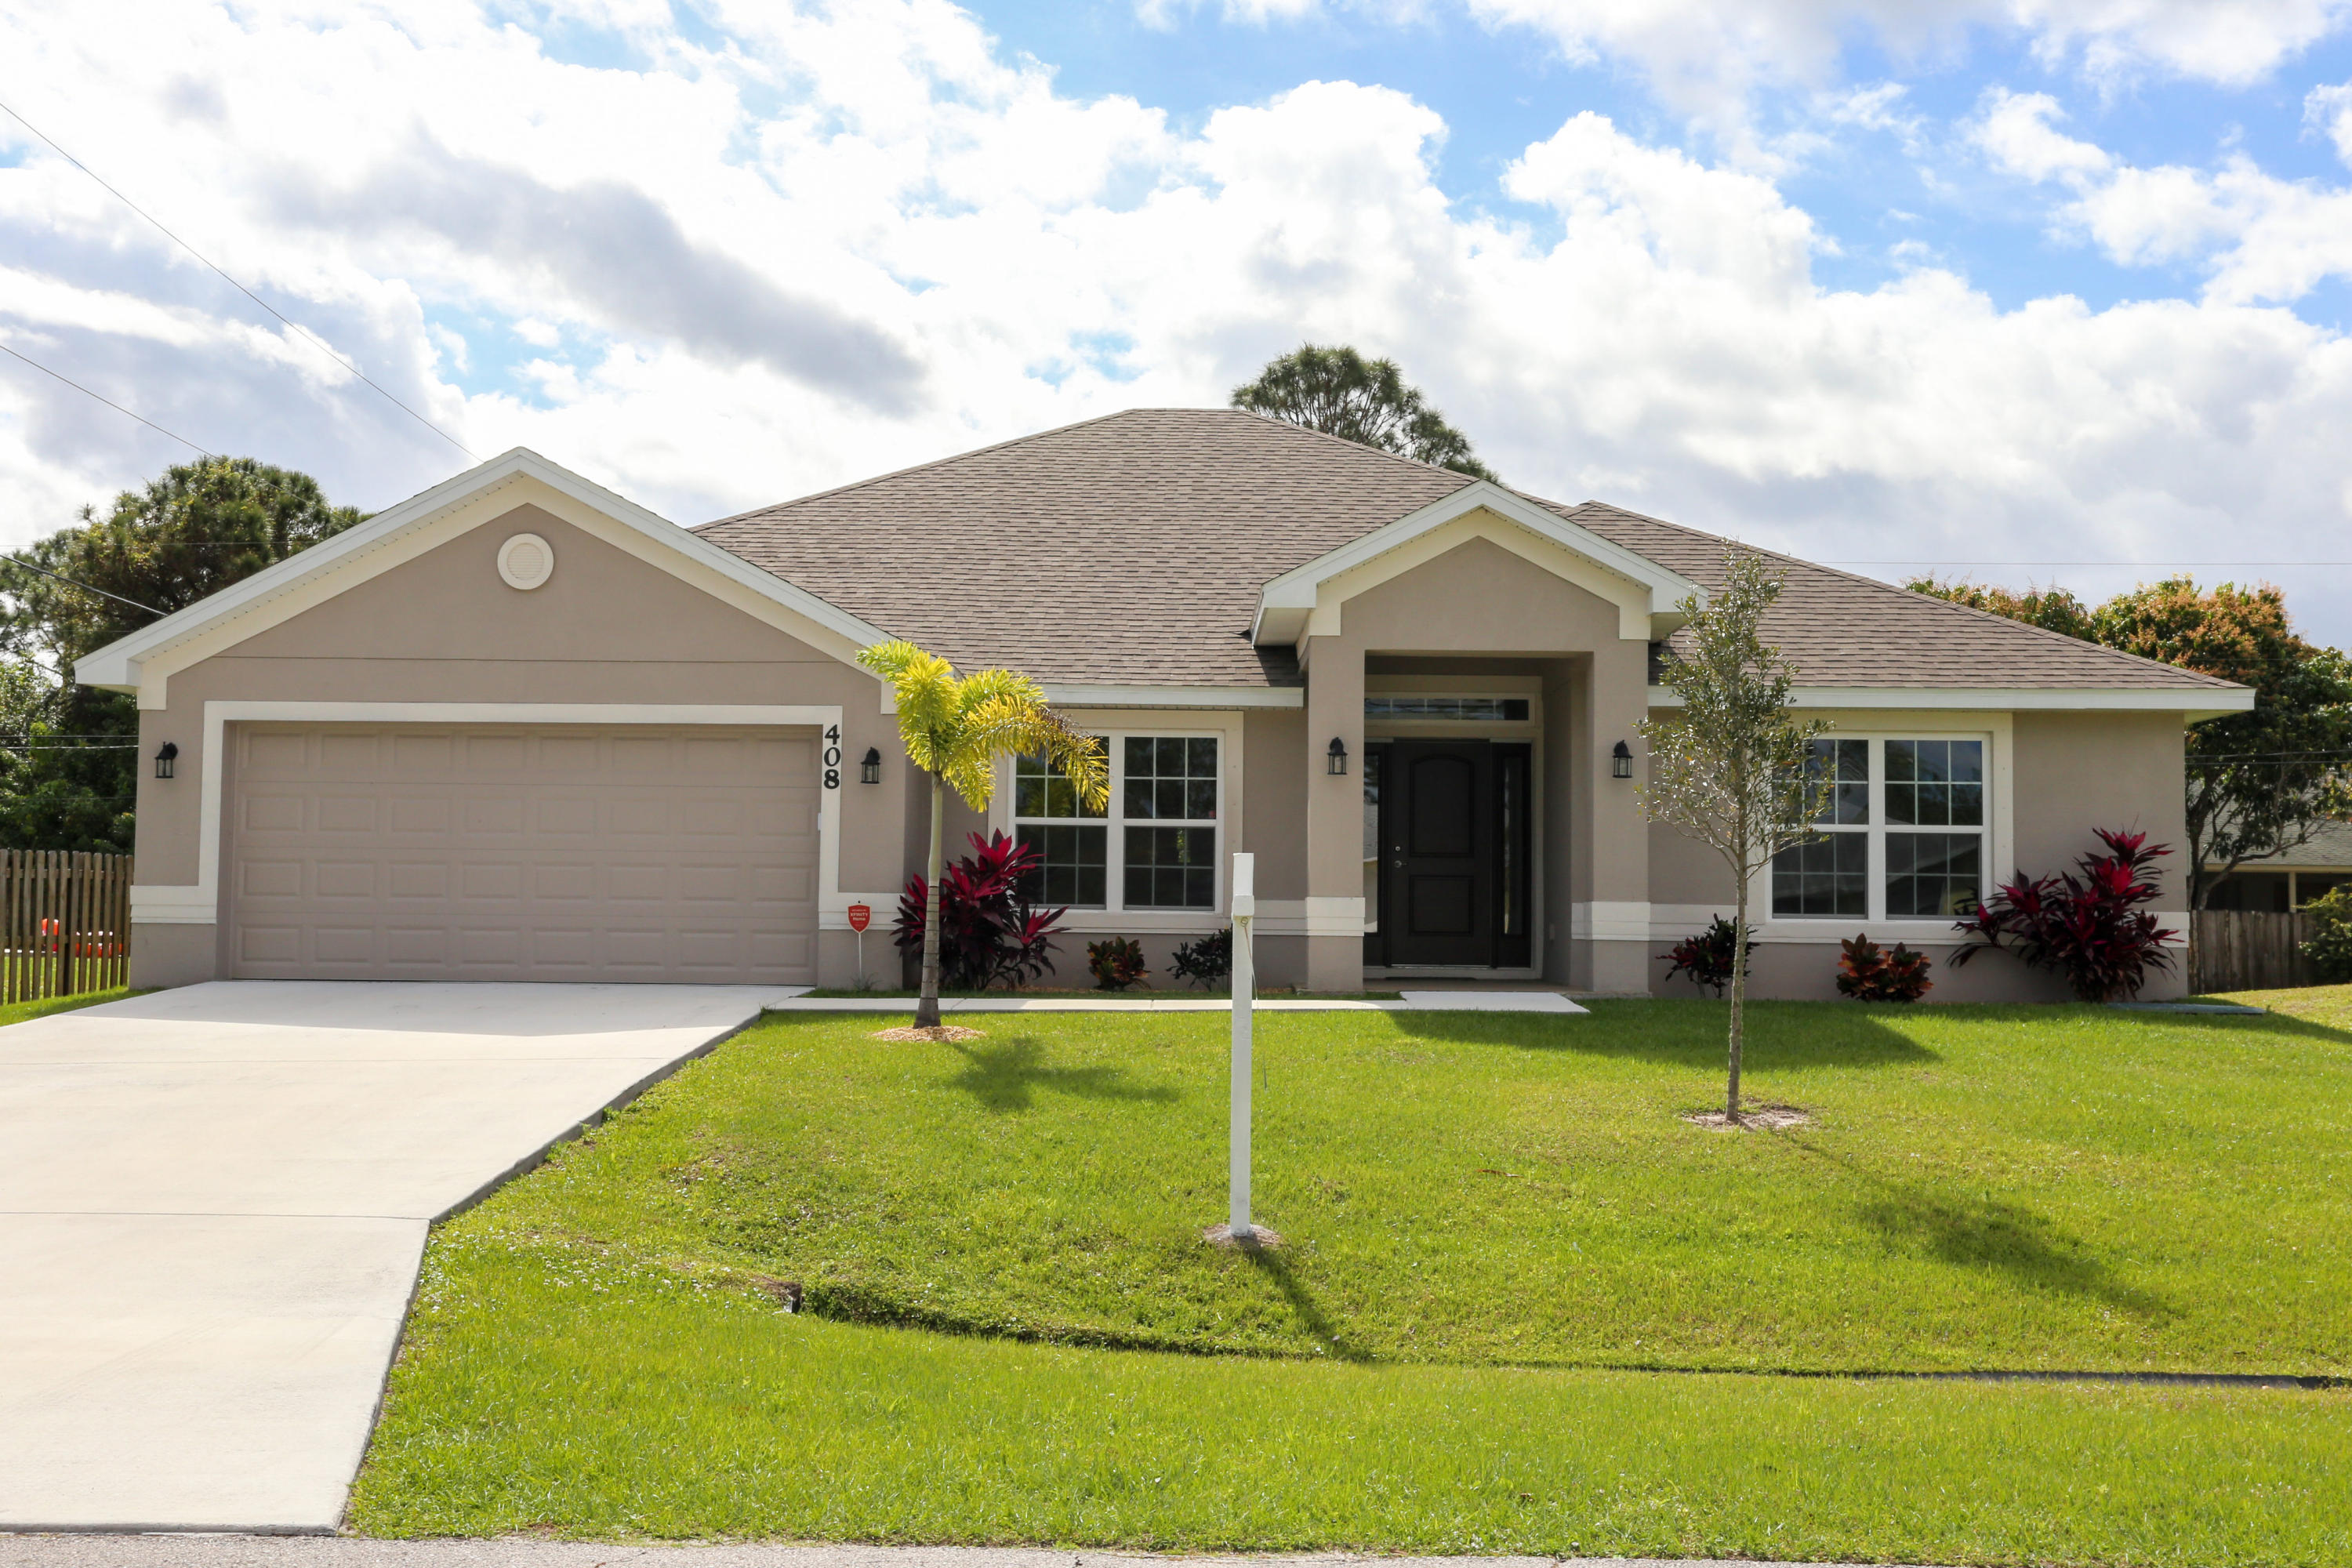 408 SW Seaflower Terrace, Port Saint Lucie, Florida